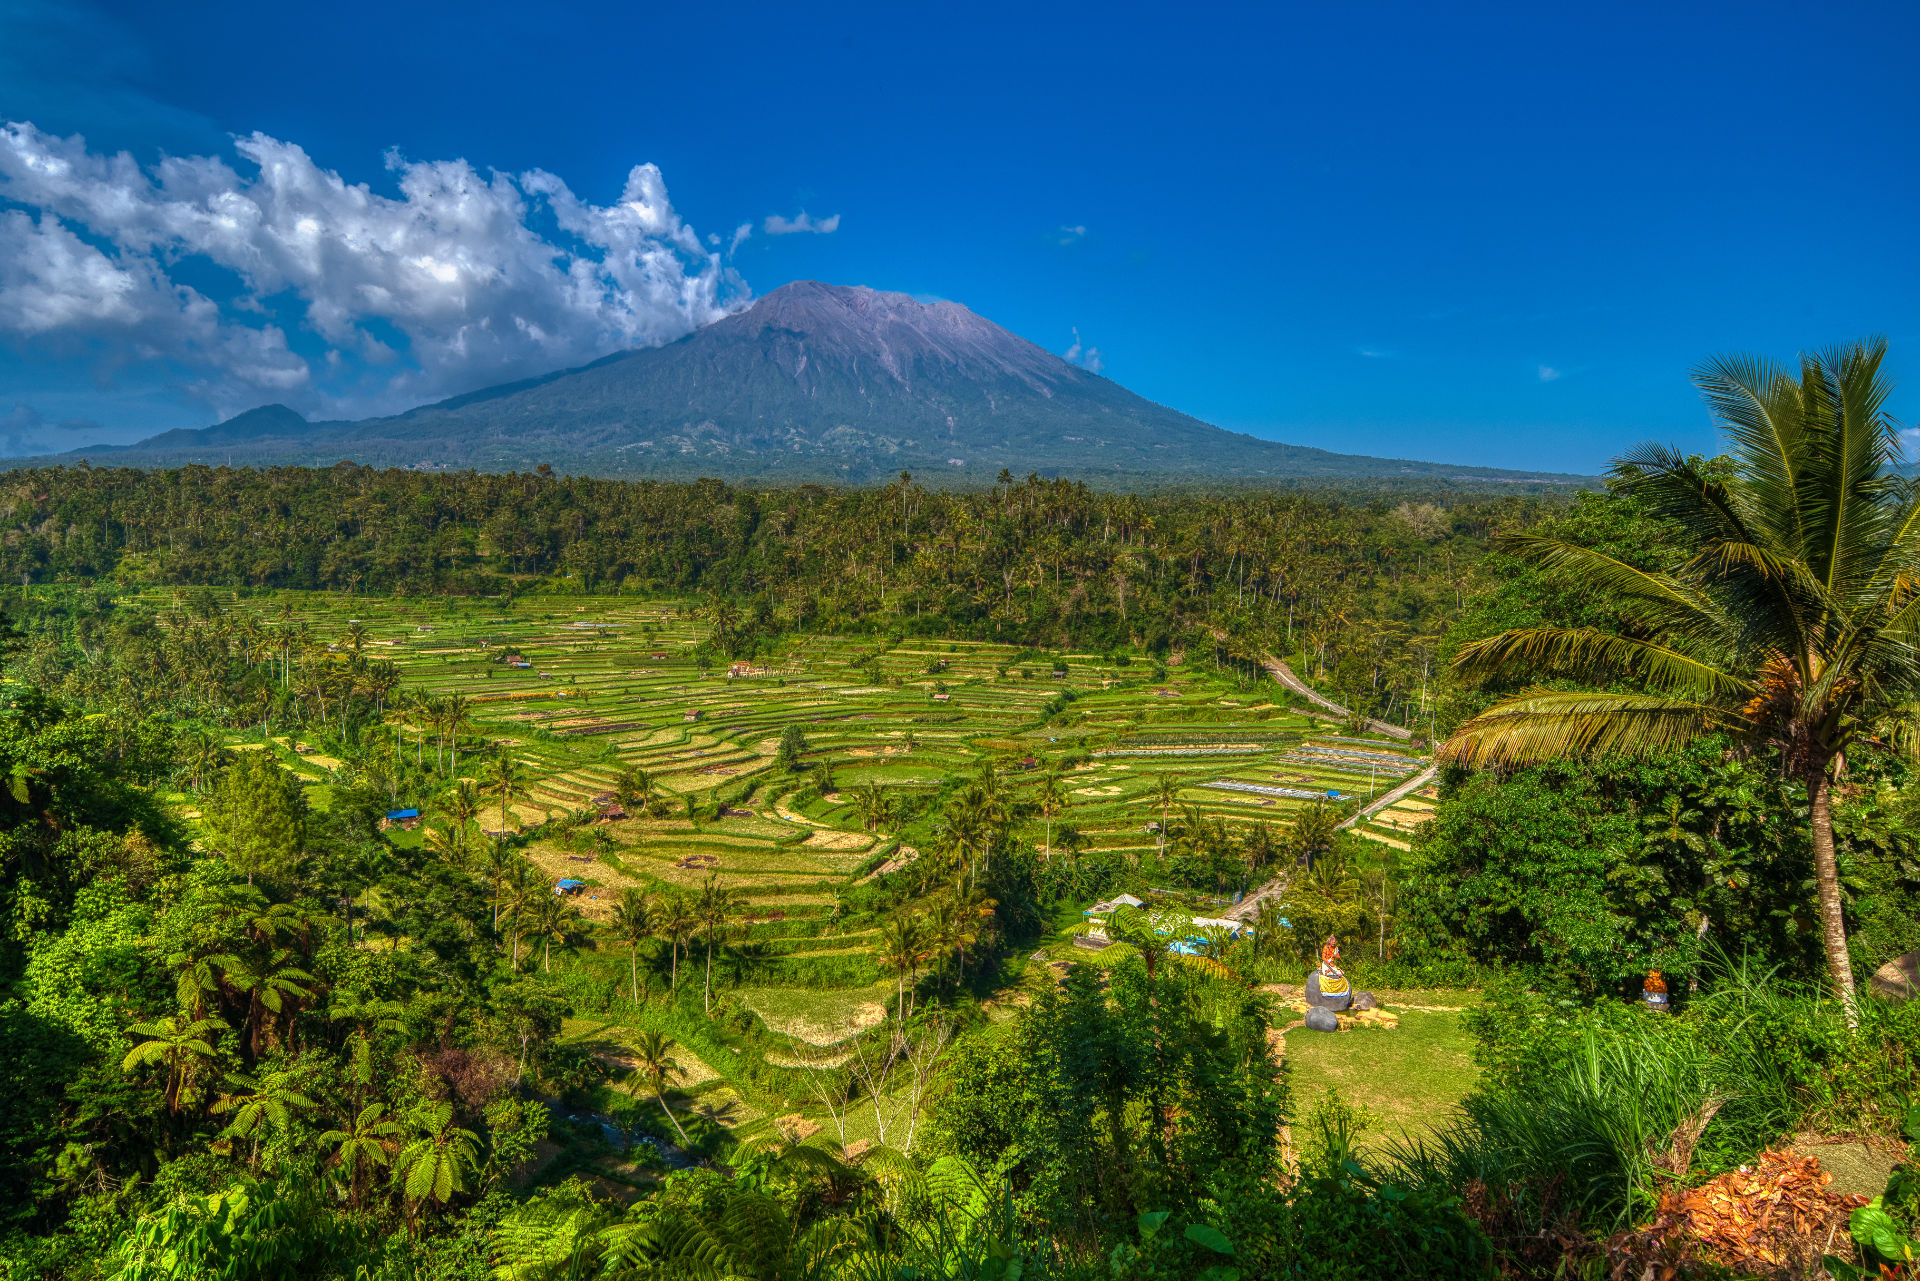 Bali, the Island of the Gods